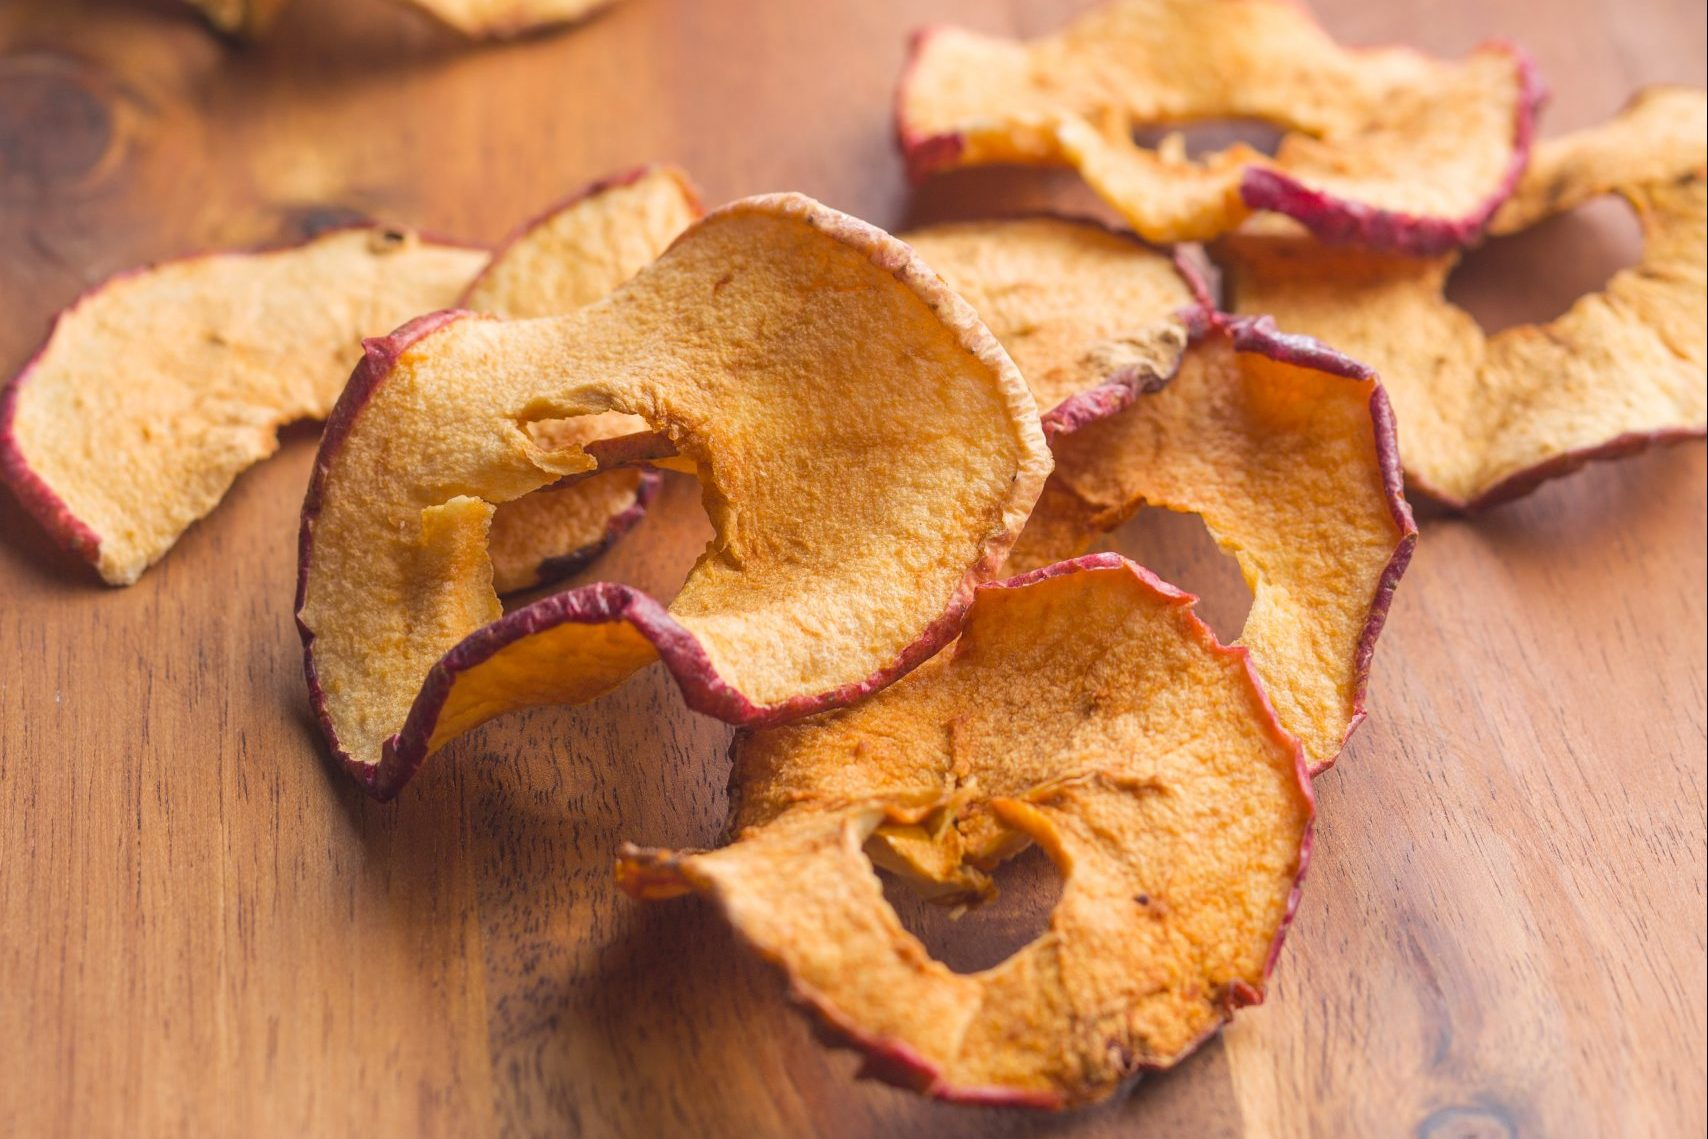 Dried apple slices.